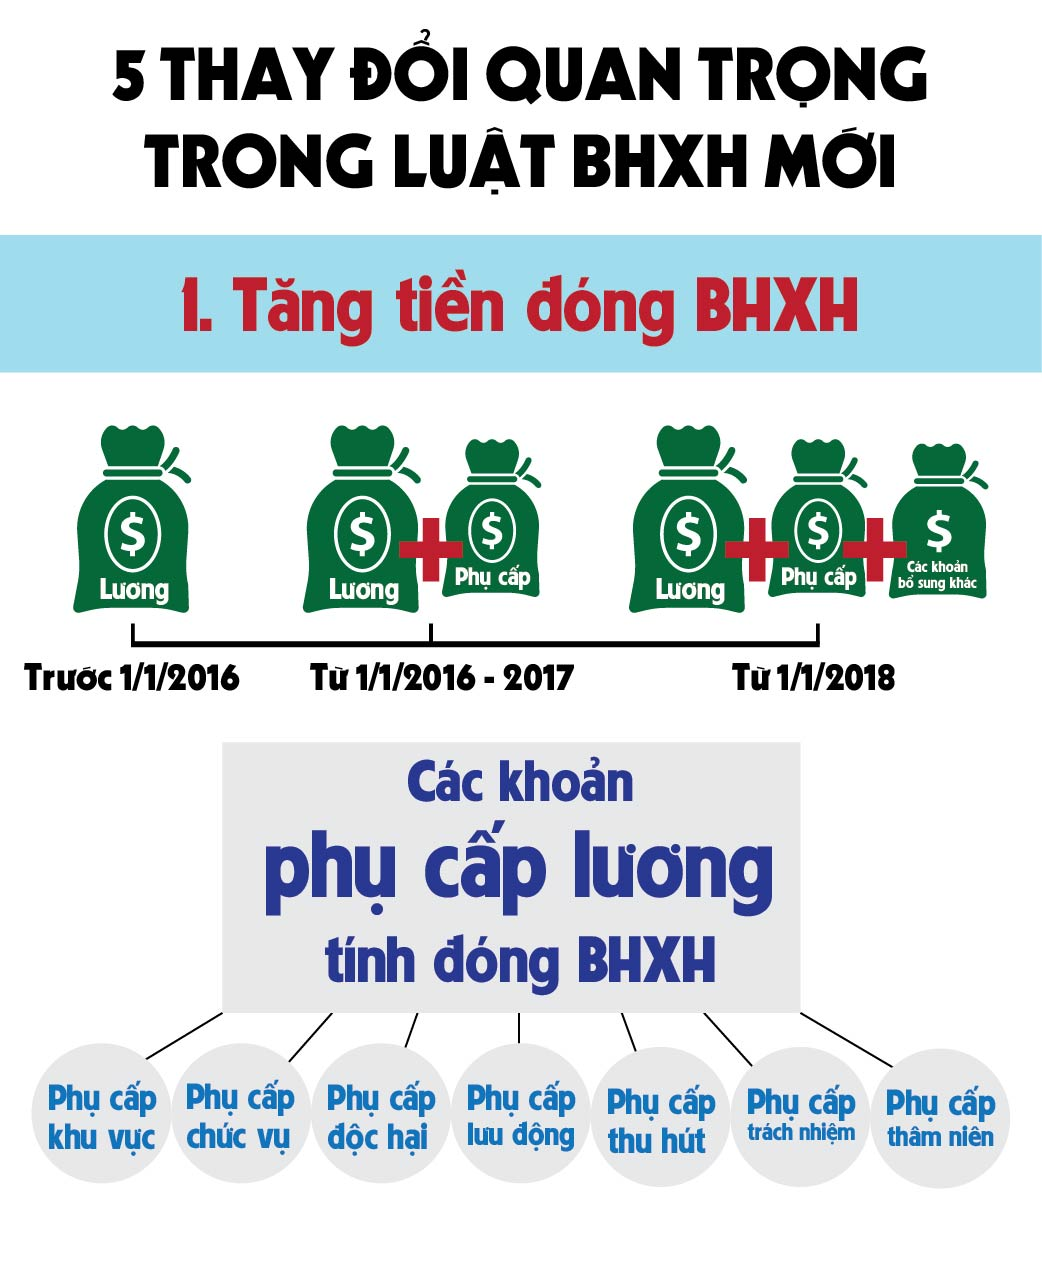 [infographic] 5 thay doi quan trong trong luat bhxh moi hinh anh 1